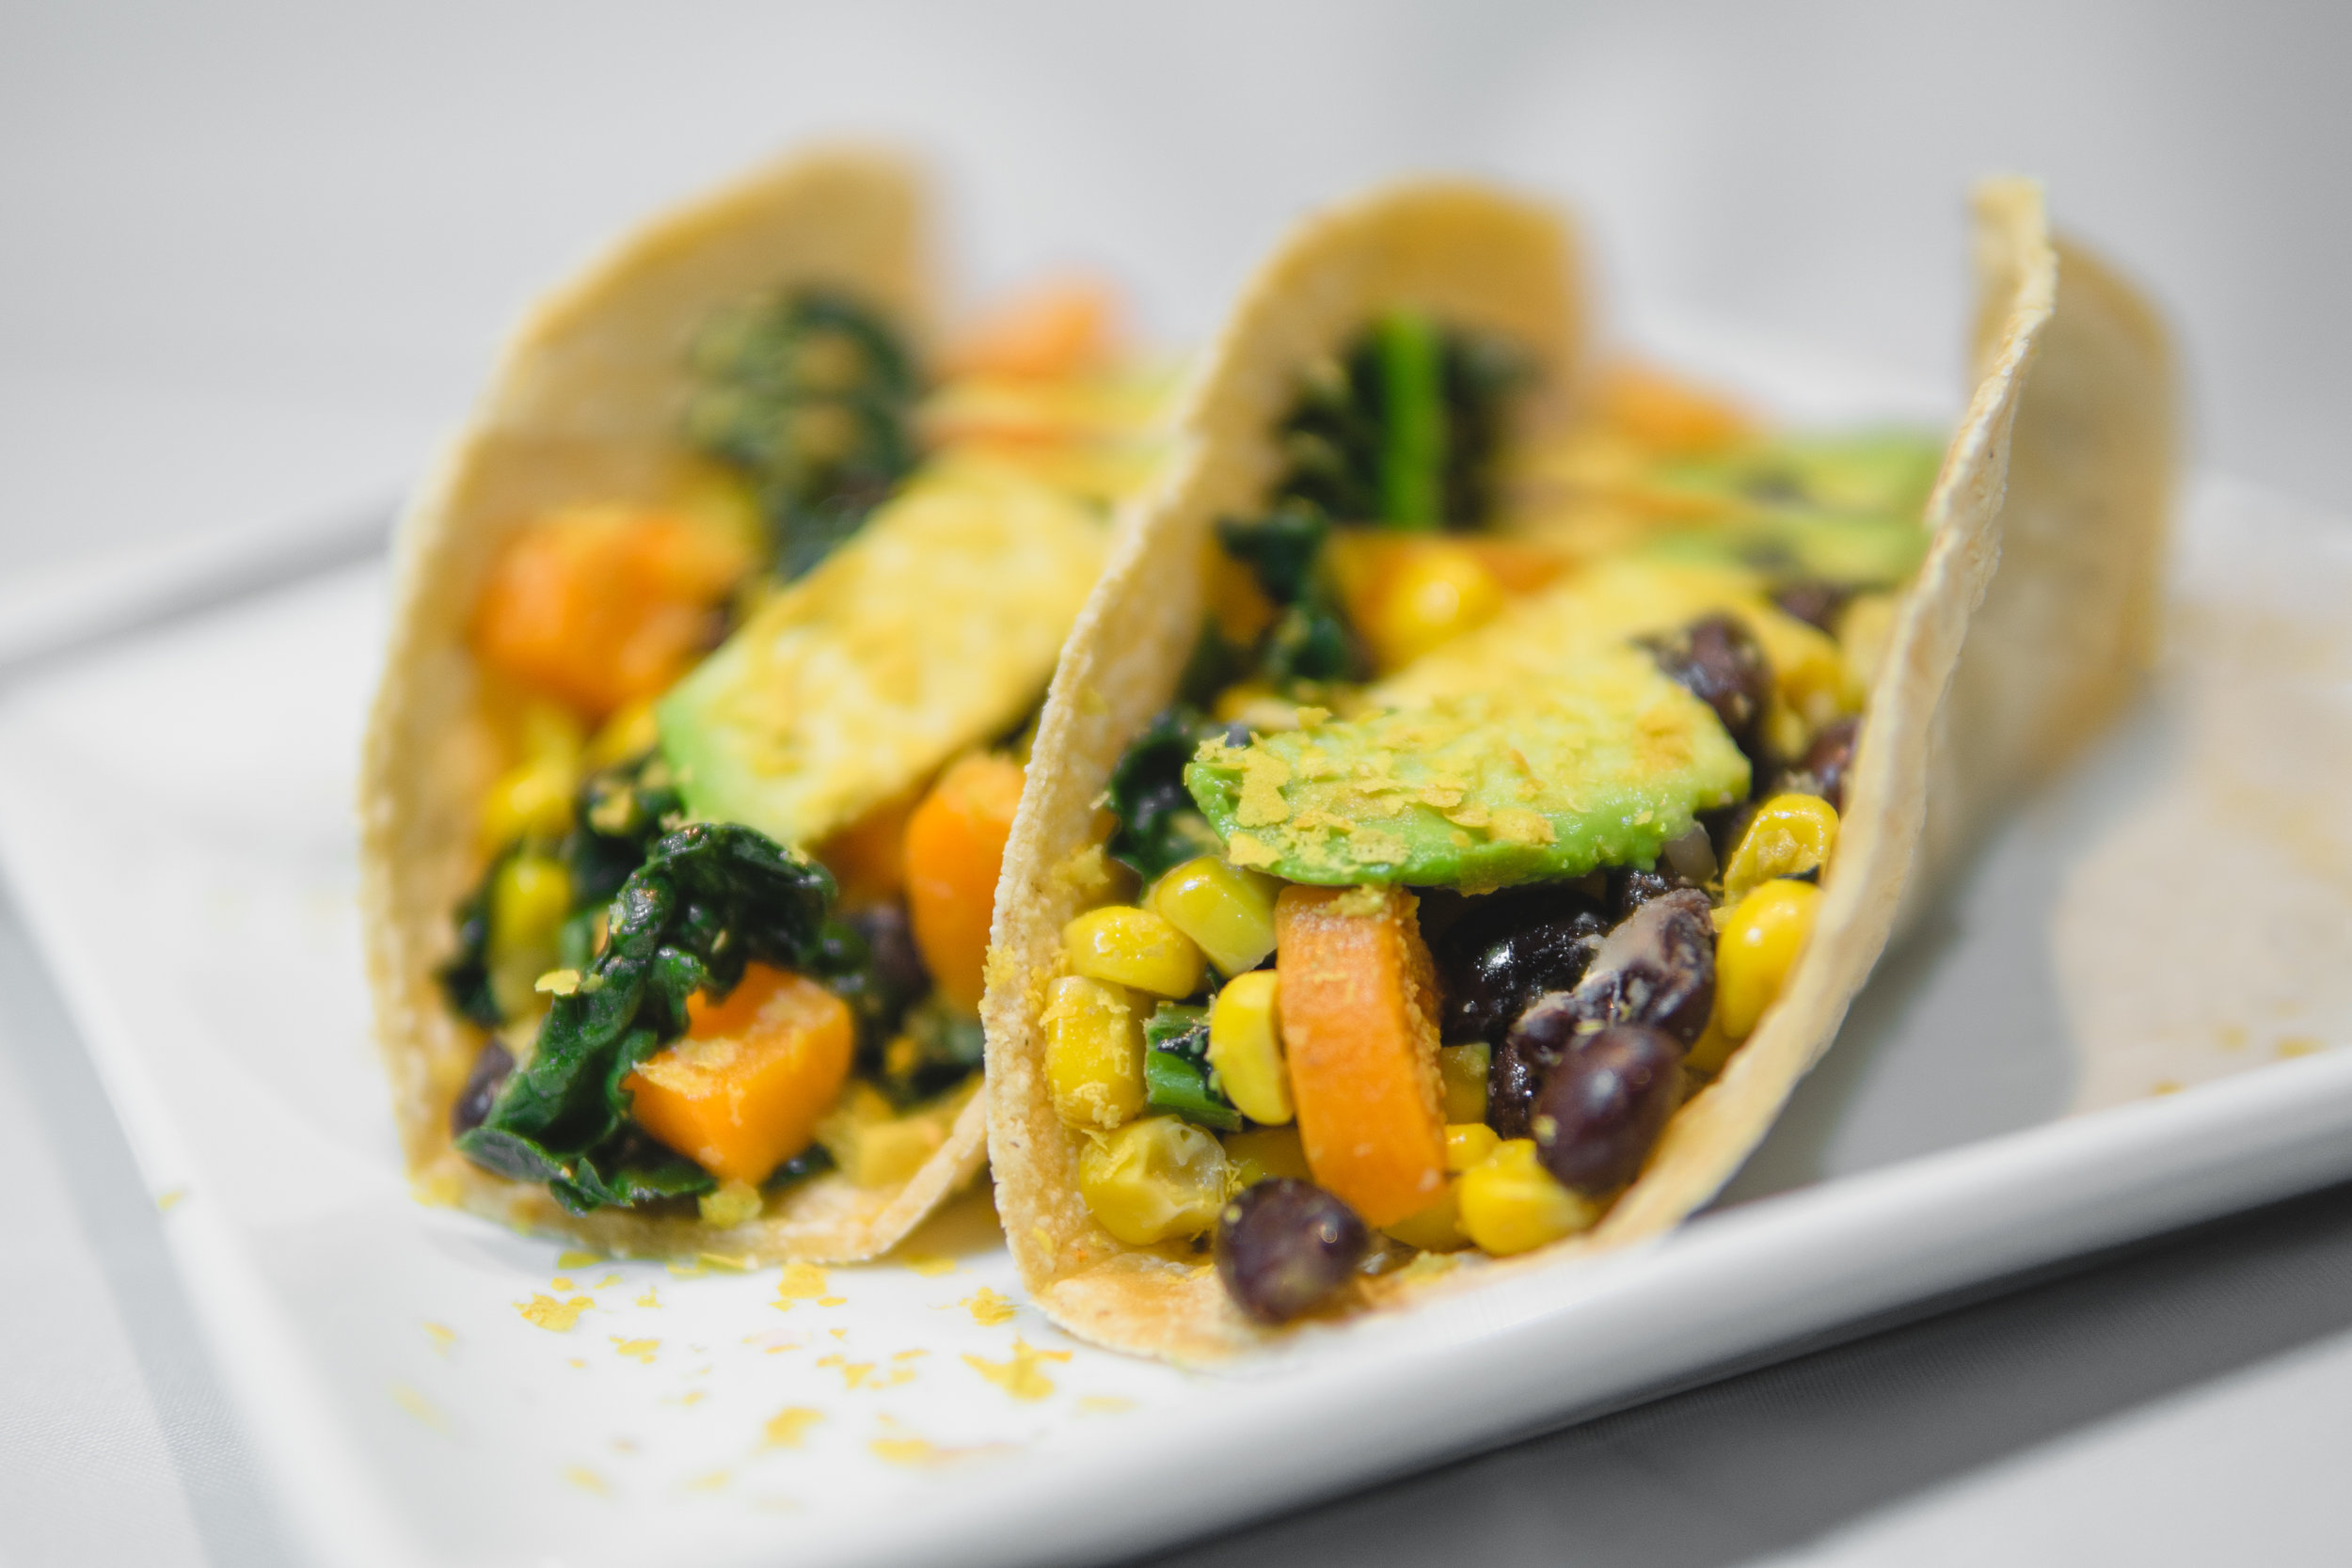 Hippie Tacos - 1/2 an avocado2 corn tortillas1/2 cup cooked black beans1/2 cup of corn1 cooked and diced sweet potato2 tablespoons tahini1 tablespoon nutritional yeast